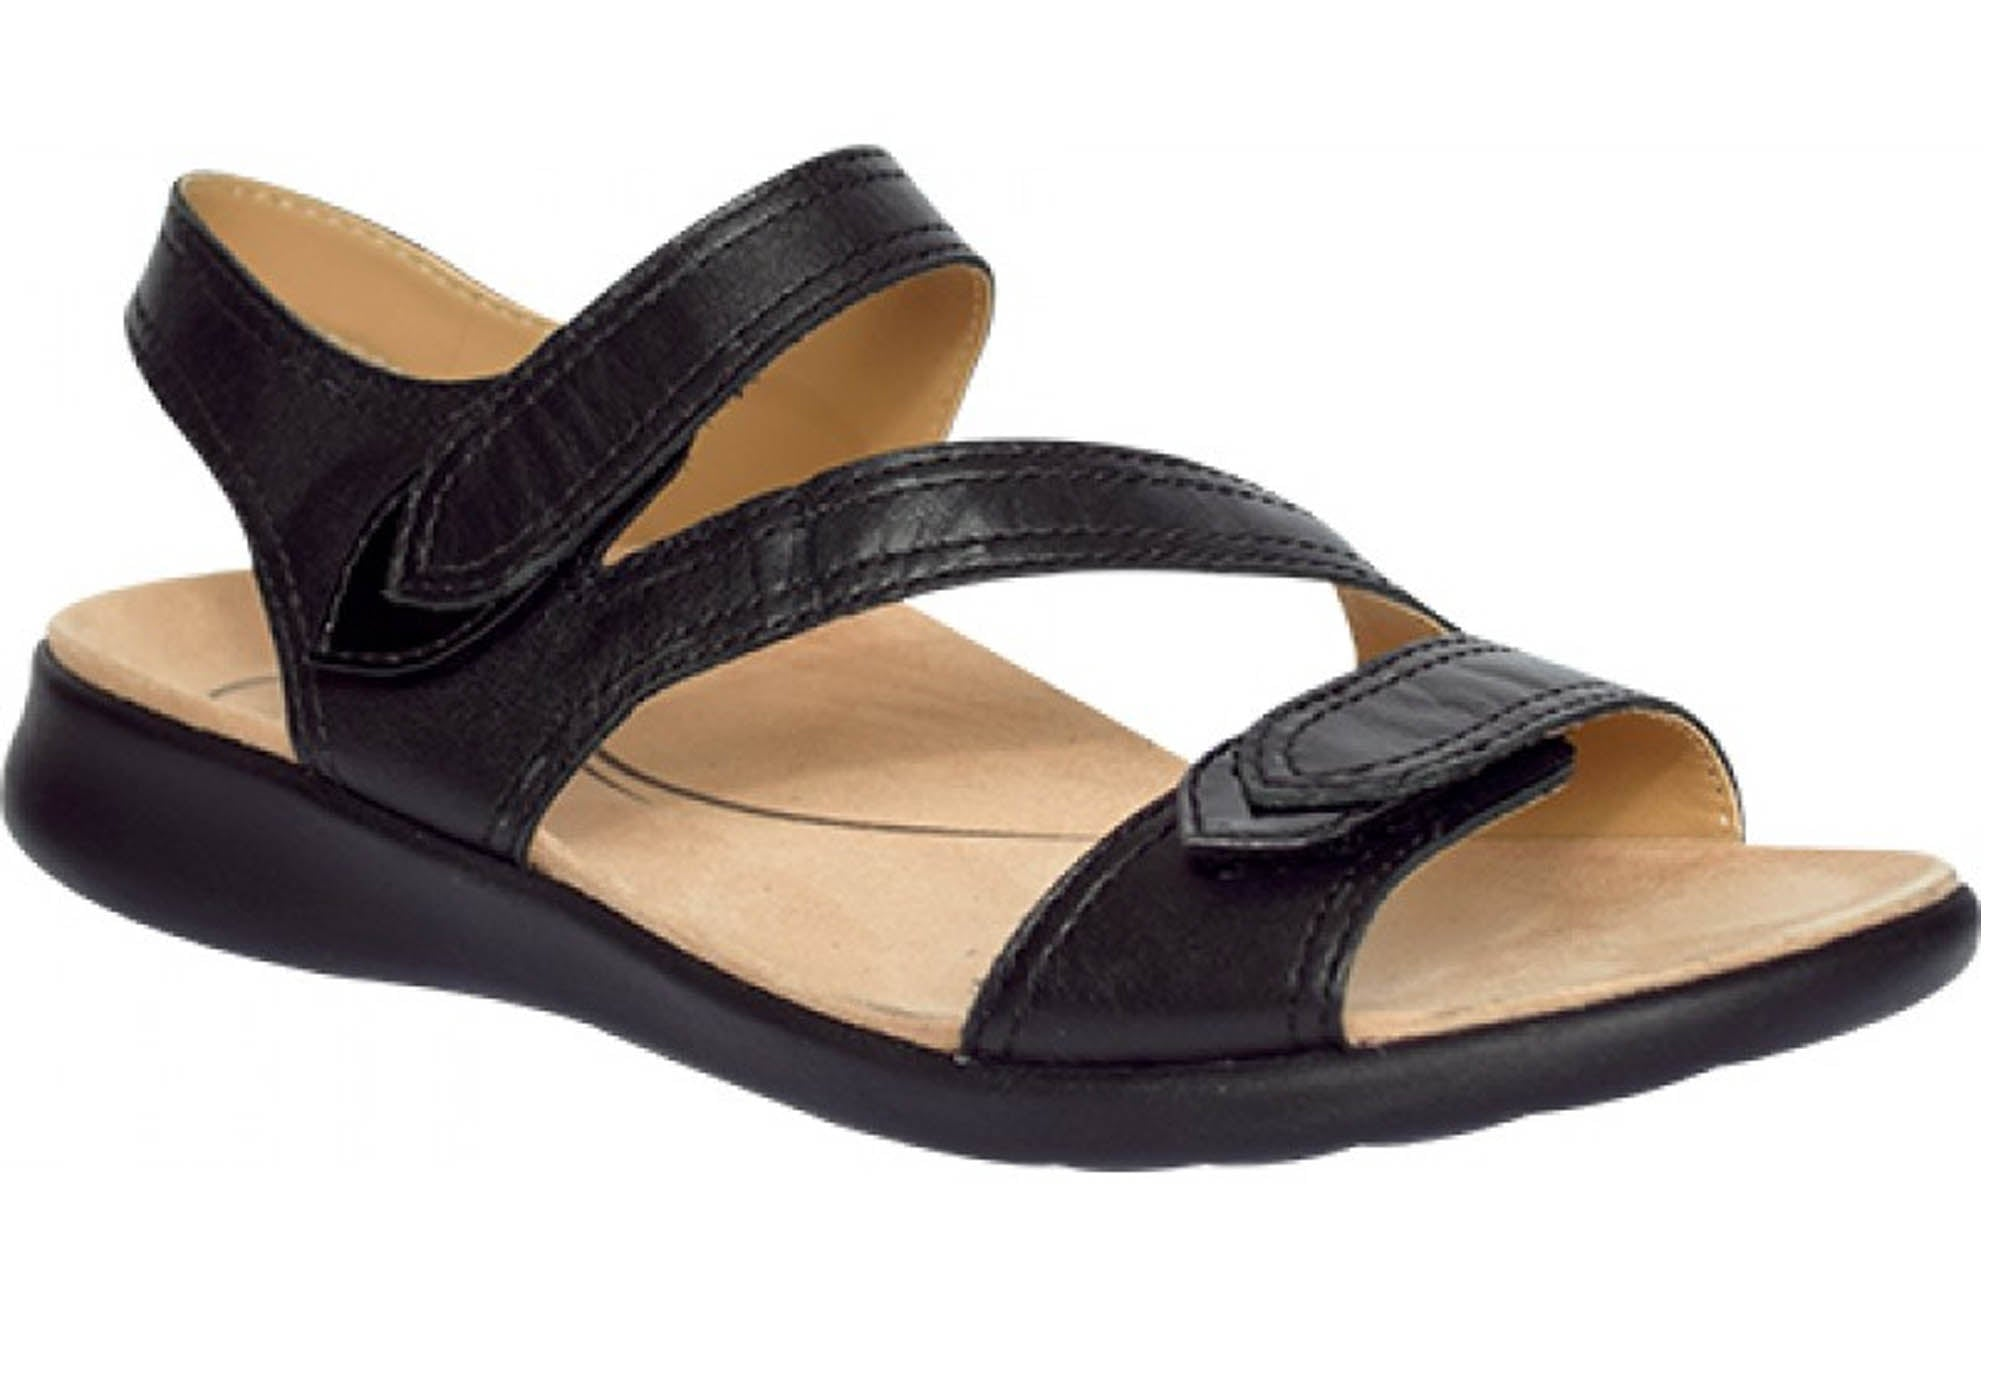 Details about Brand New Scholl Orthaheel Foster Womens Comfortable Supportive Leather Sandals